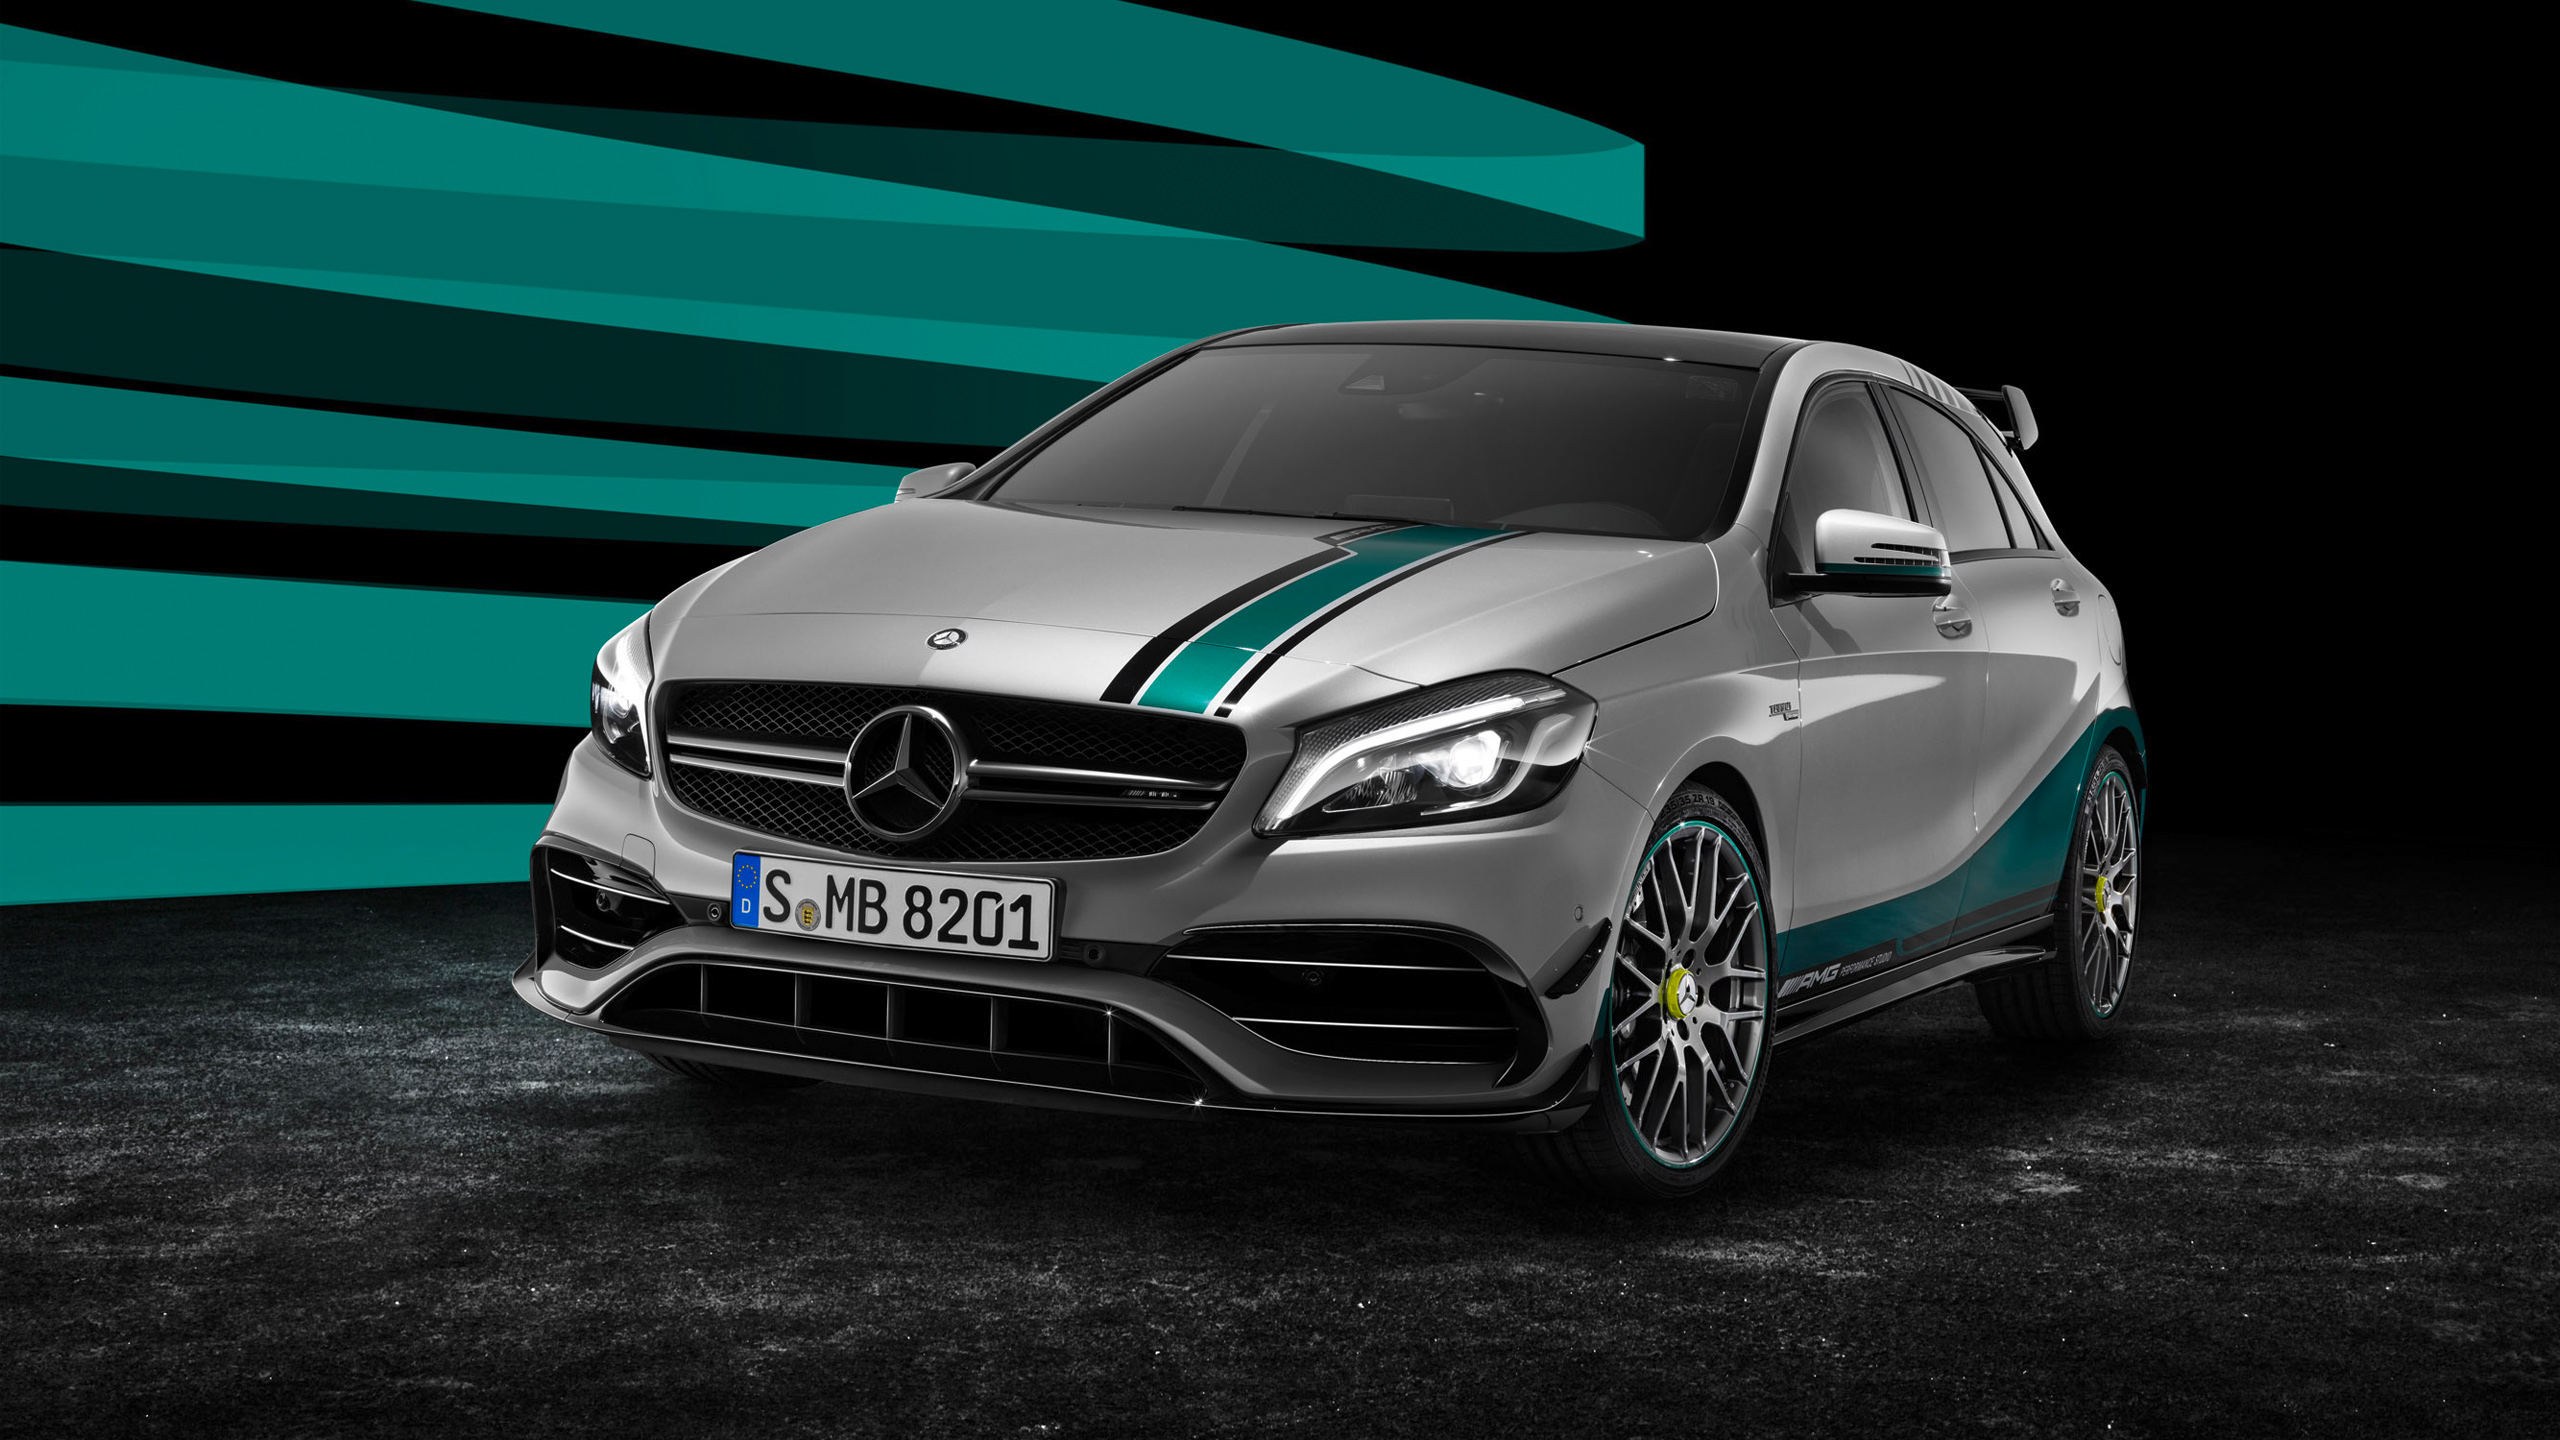 2015 mercedes amg a45 4matic champions edition wallpaper hd car wallpapers. Black Bedroom Furniture Sets. Home Design Ideas